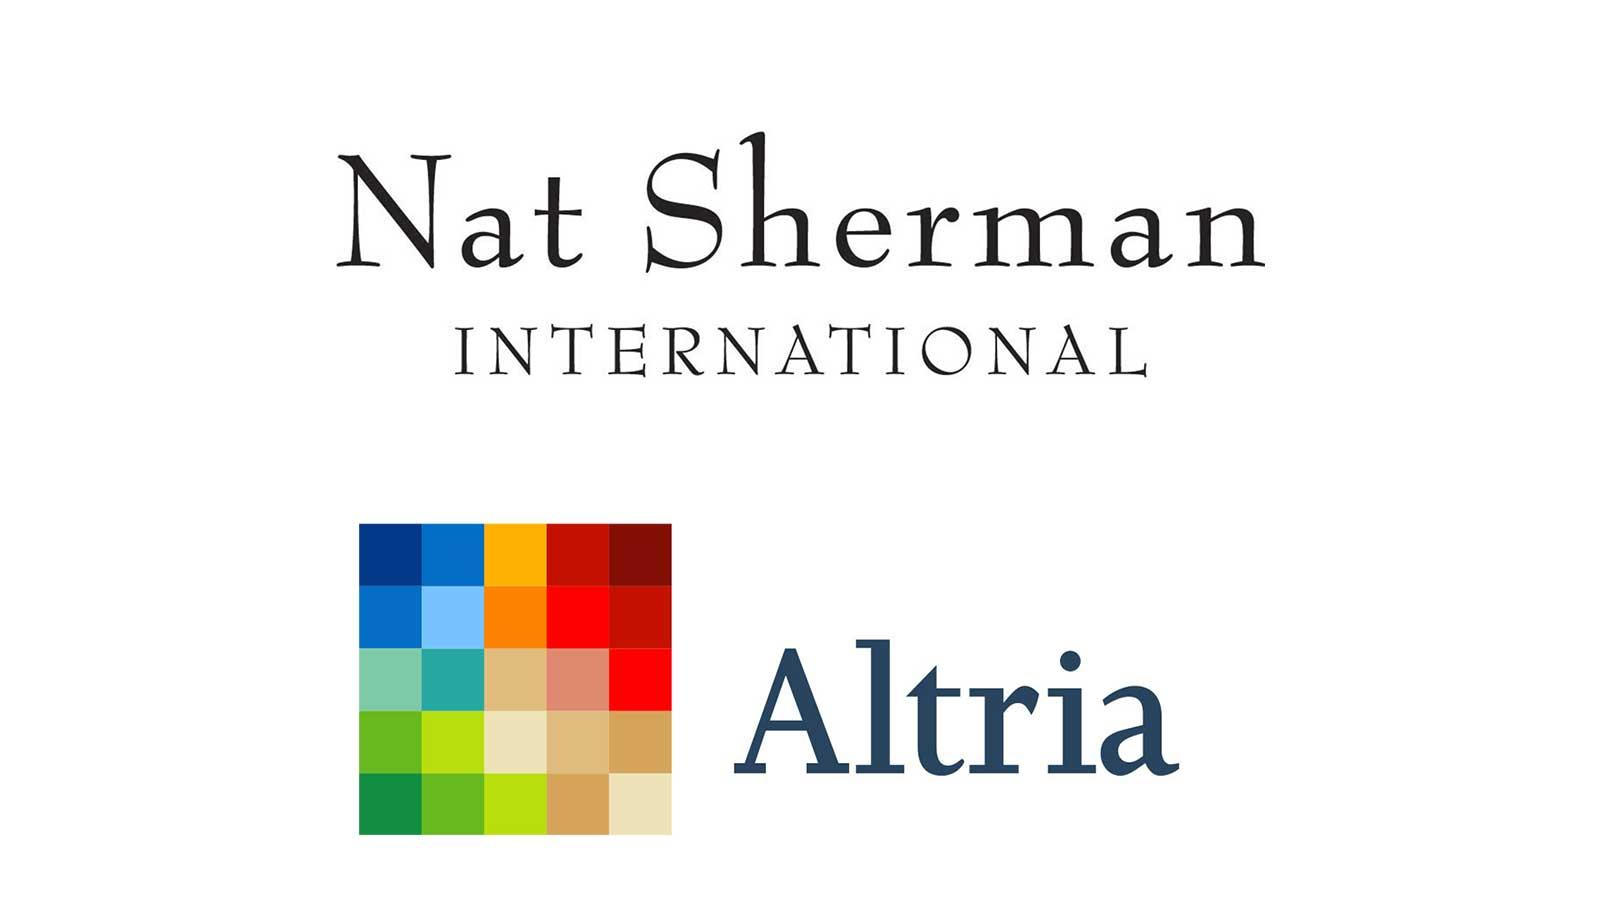 Altria Considering Sale Of Nat Sherman International Inc.